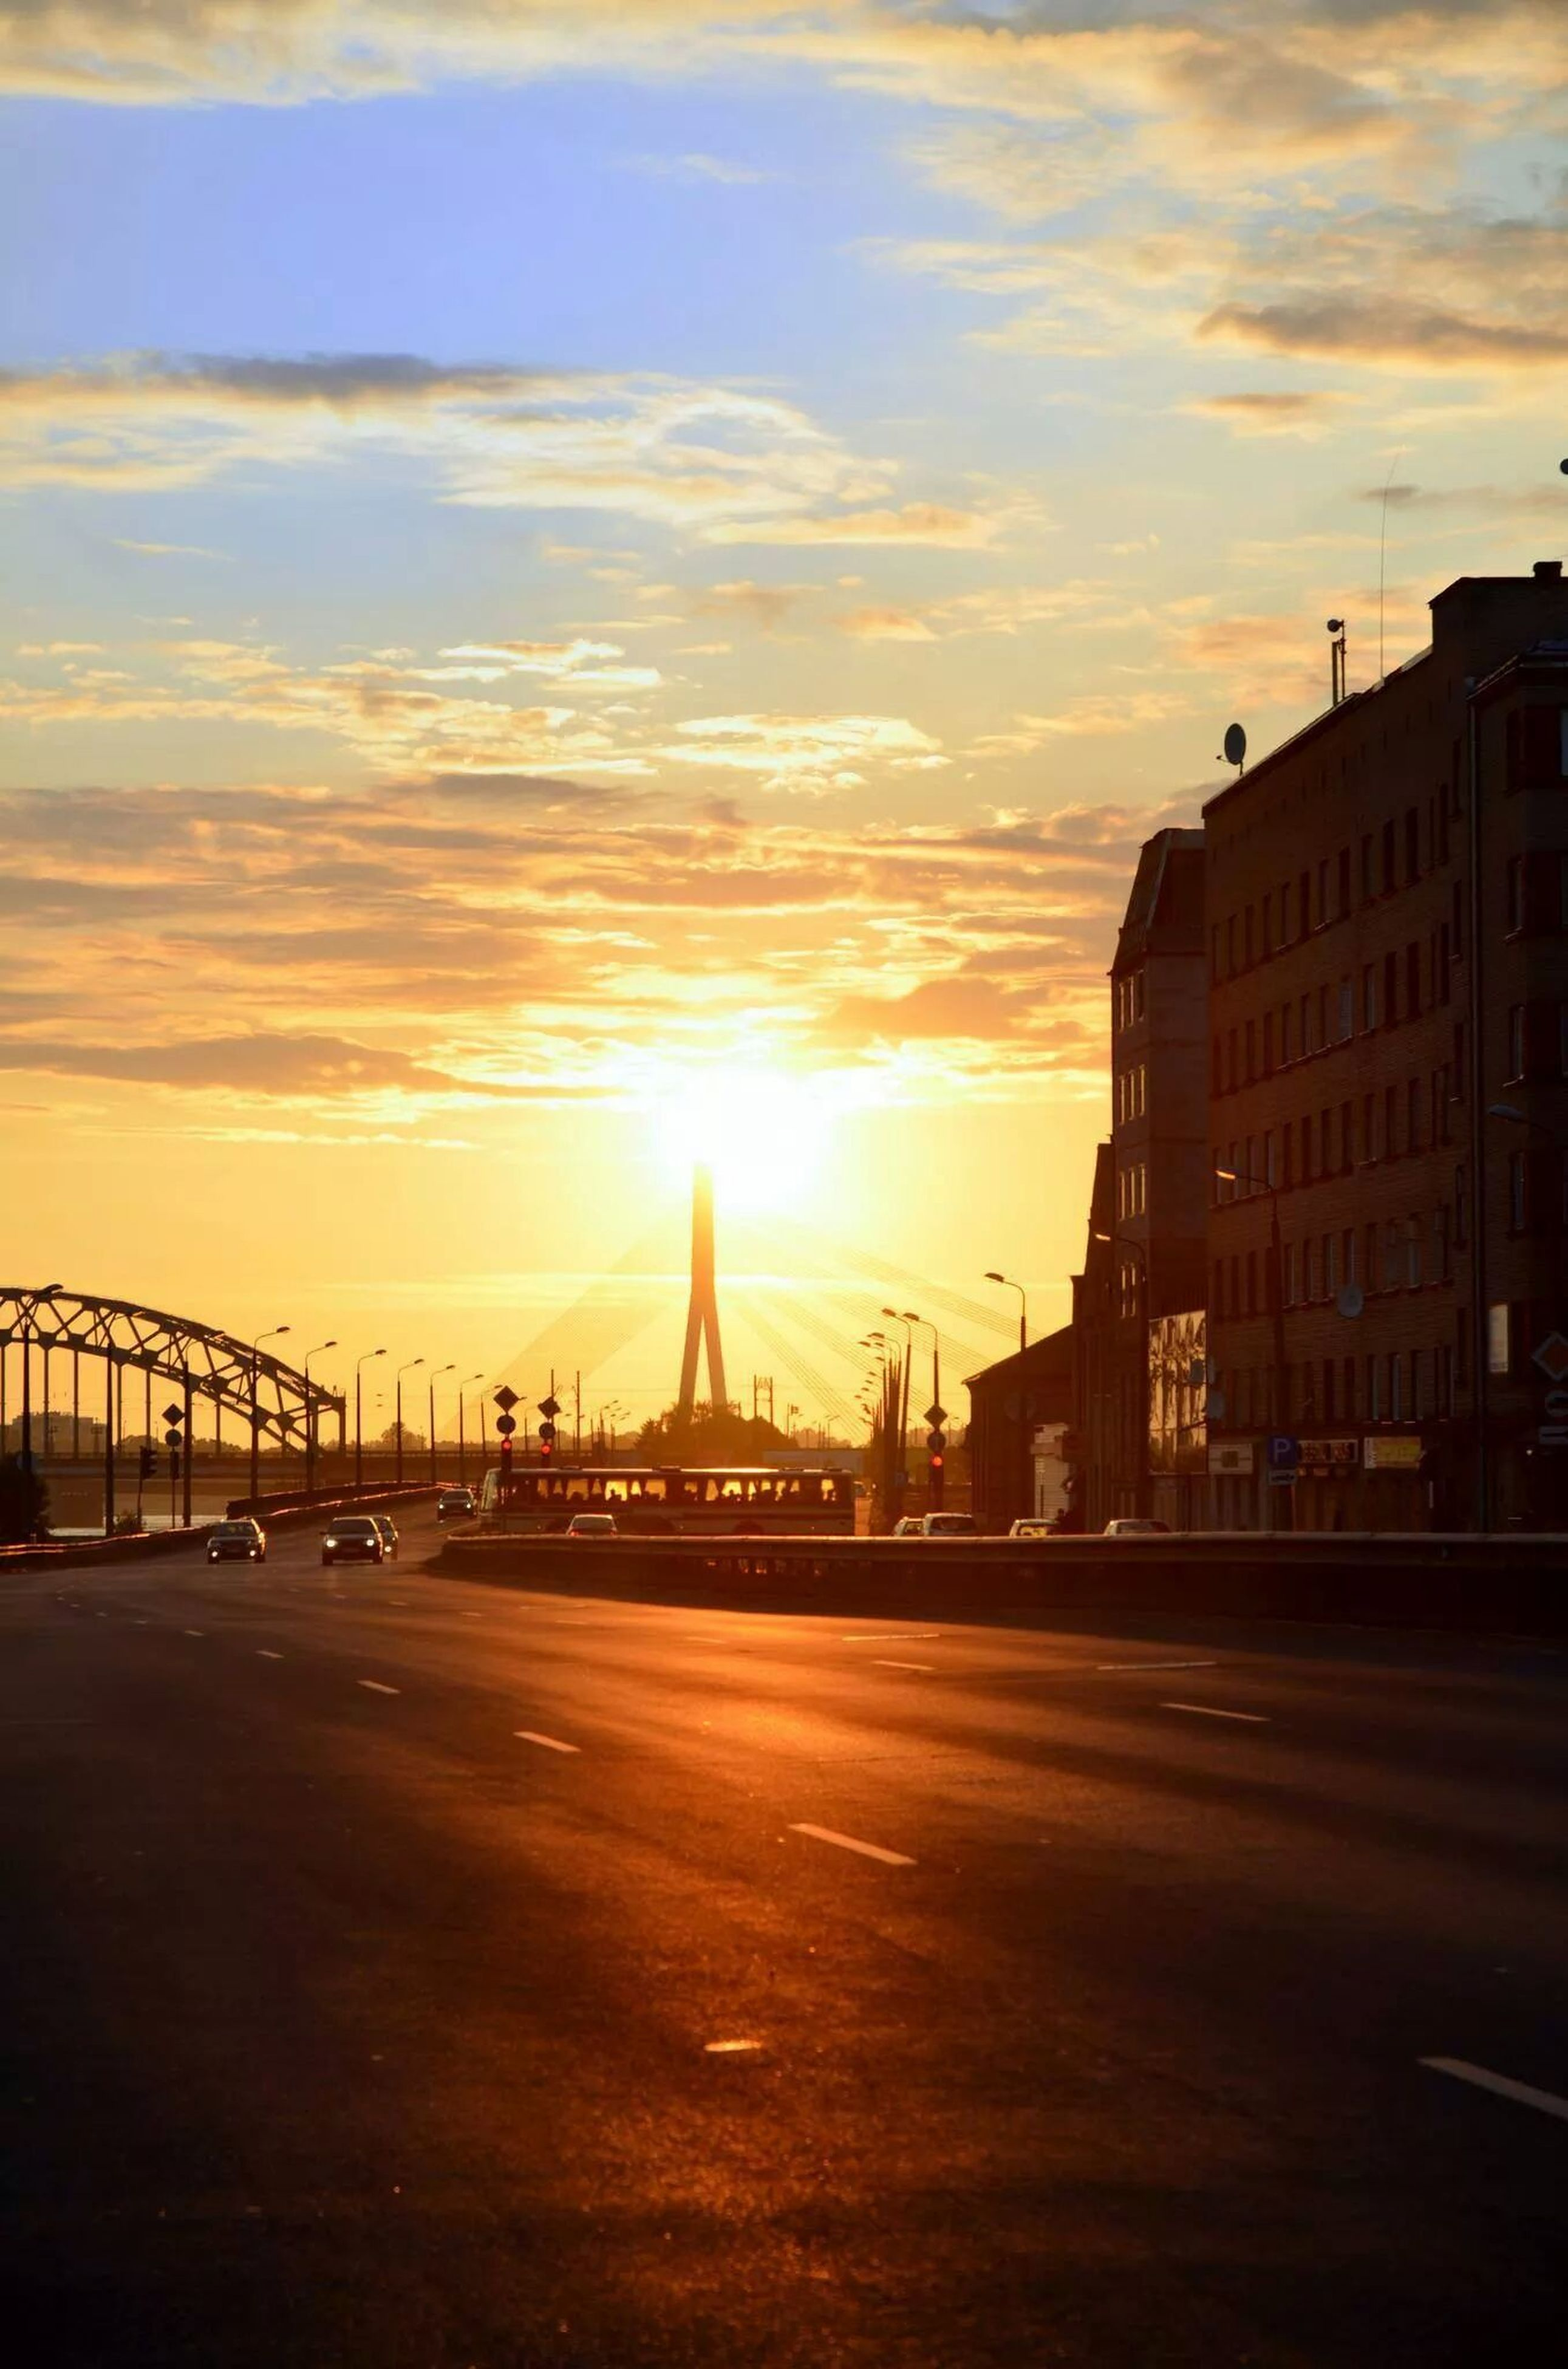 sunset, architecture, built structure, building exterior, sky, transportation, city, cloud - sky, sun, bridge - man made structure, road, orange color, connection, street, silhouette, car, the way forward, cloud, sunlight, outdoors